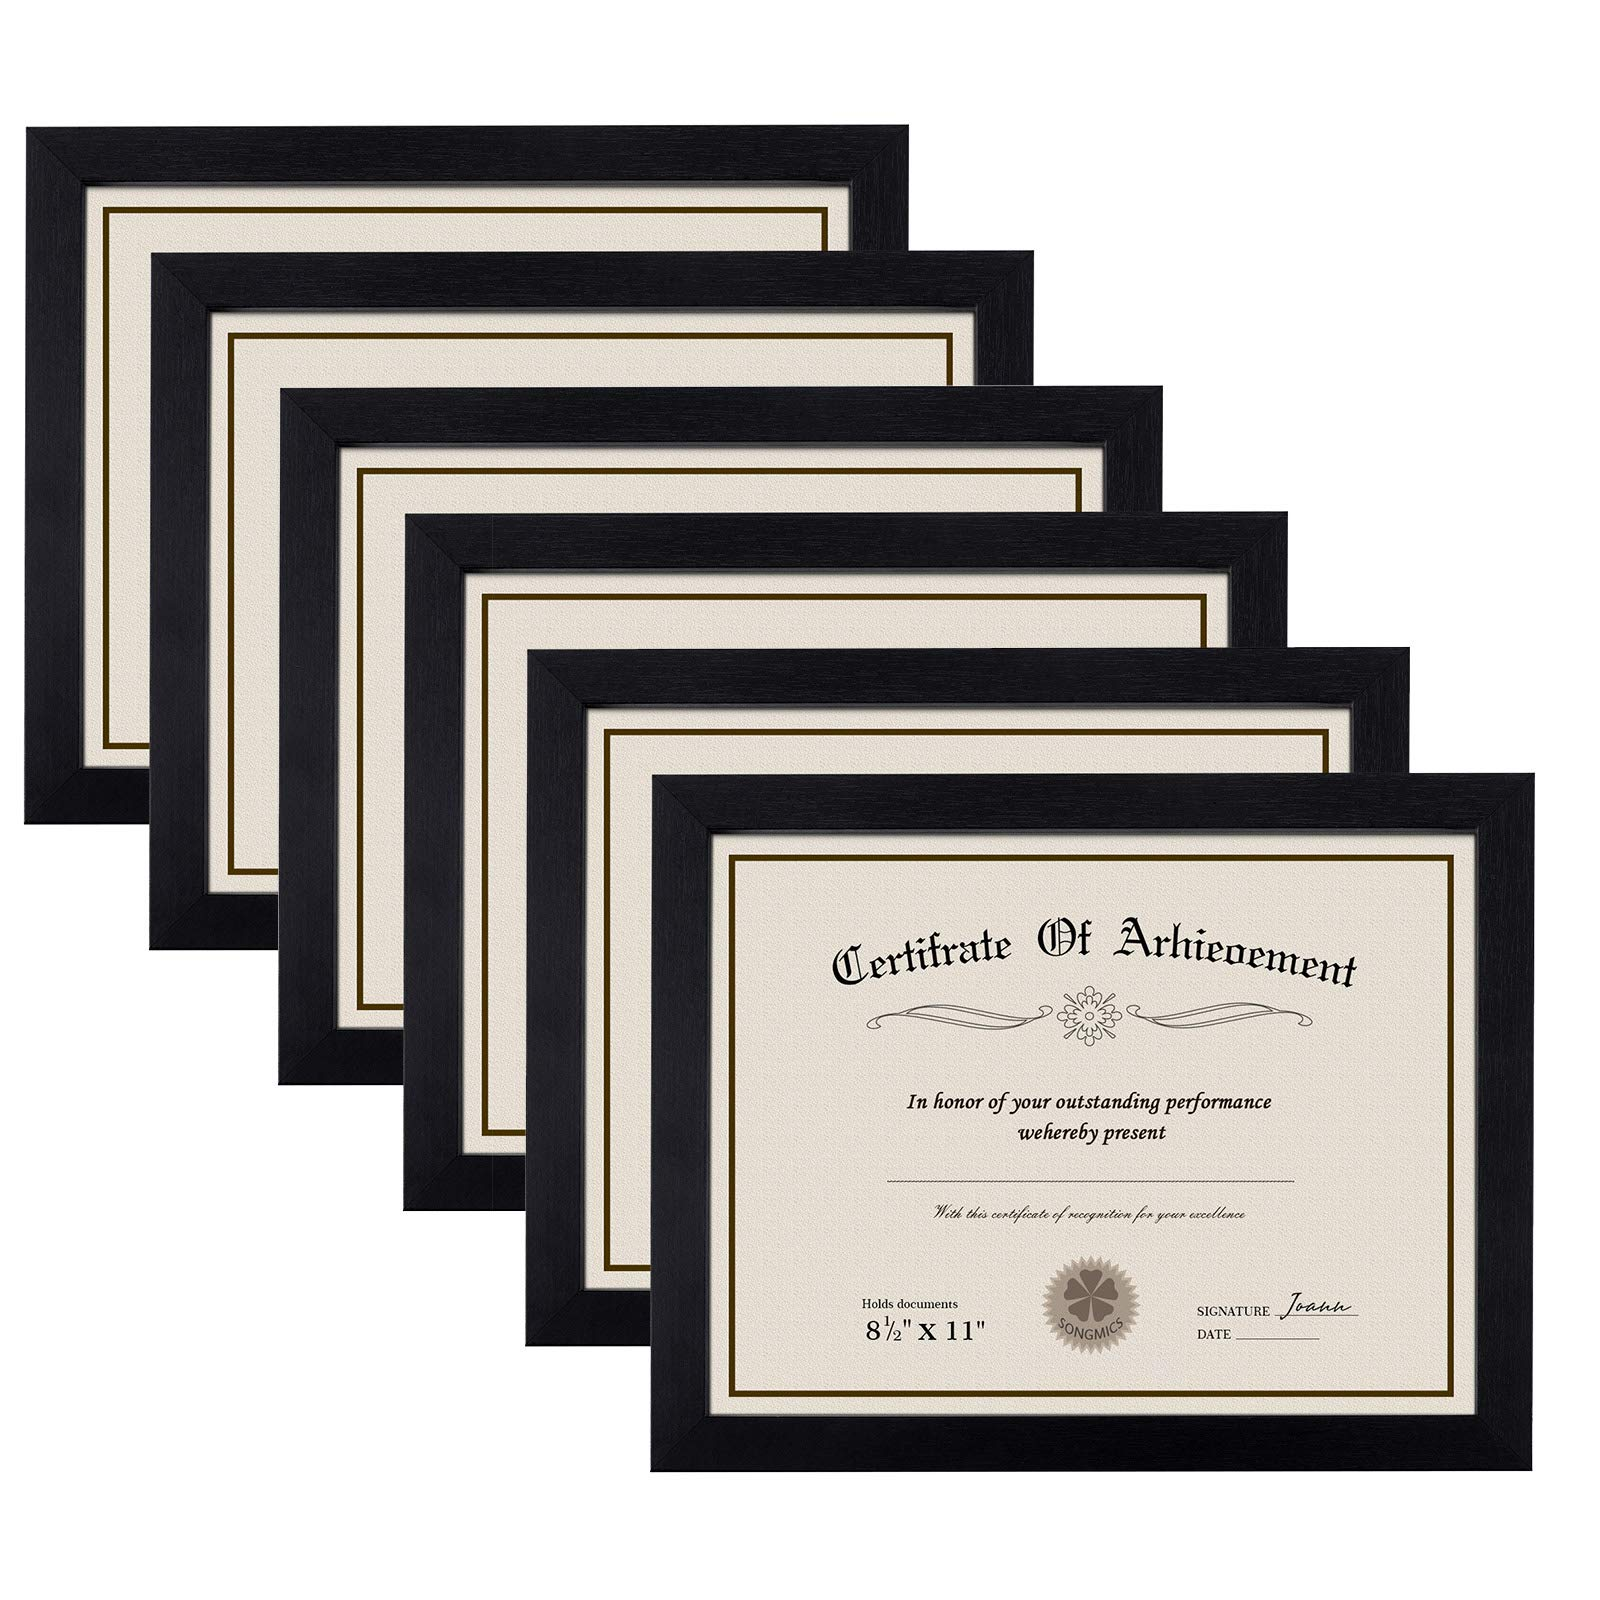 SONGMICS Document Frame for 8.5 x 11 Inches Certificate, Certificate Frame Diploma Frame, Picture Frame 8.5 x 11 Inches, Glass Protection Front Wooden Black 6 Pack URPF08BK-6